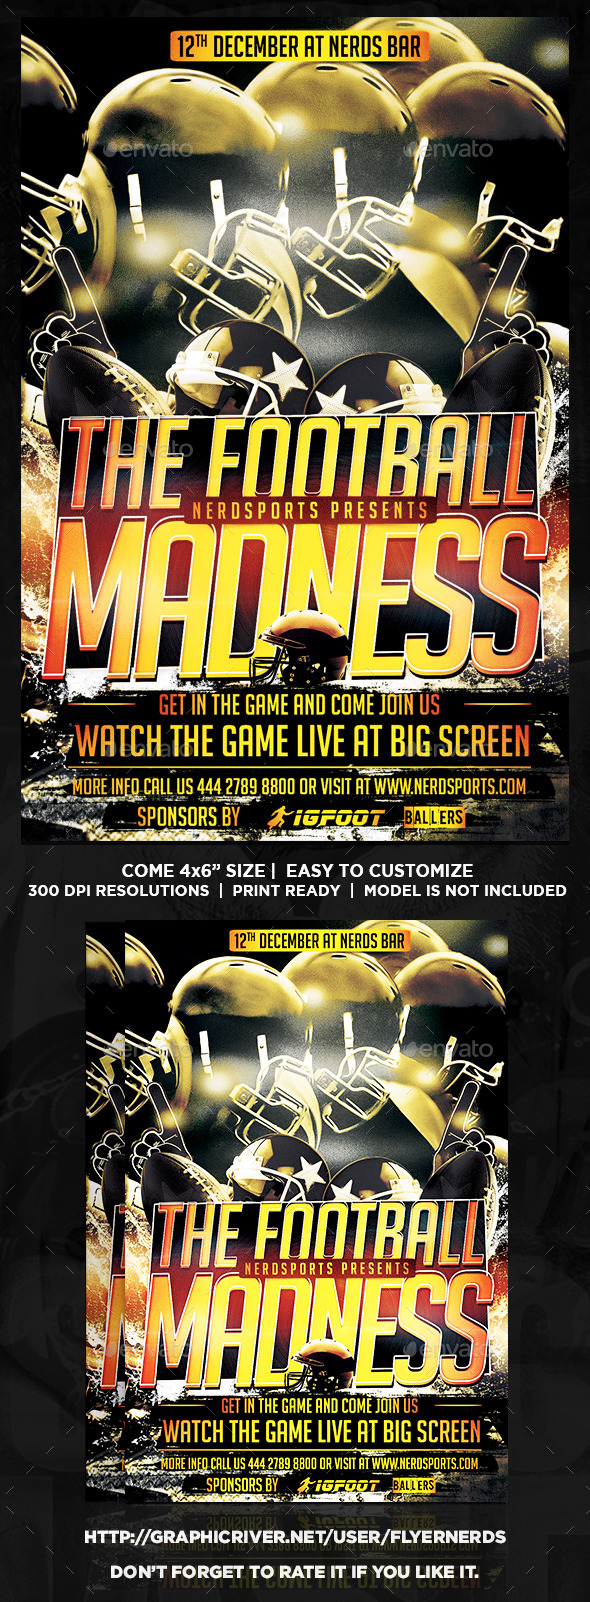 GraphicRiver Football Madness Flyer 8916147